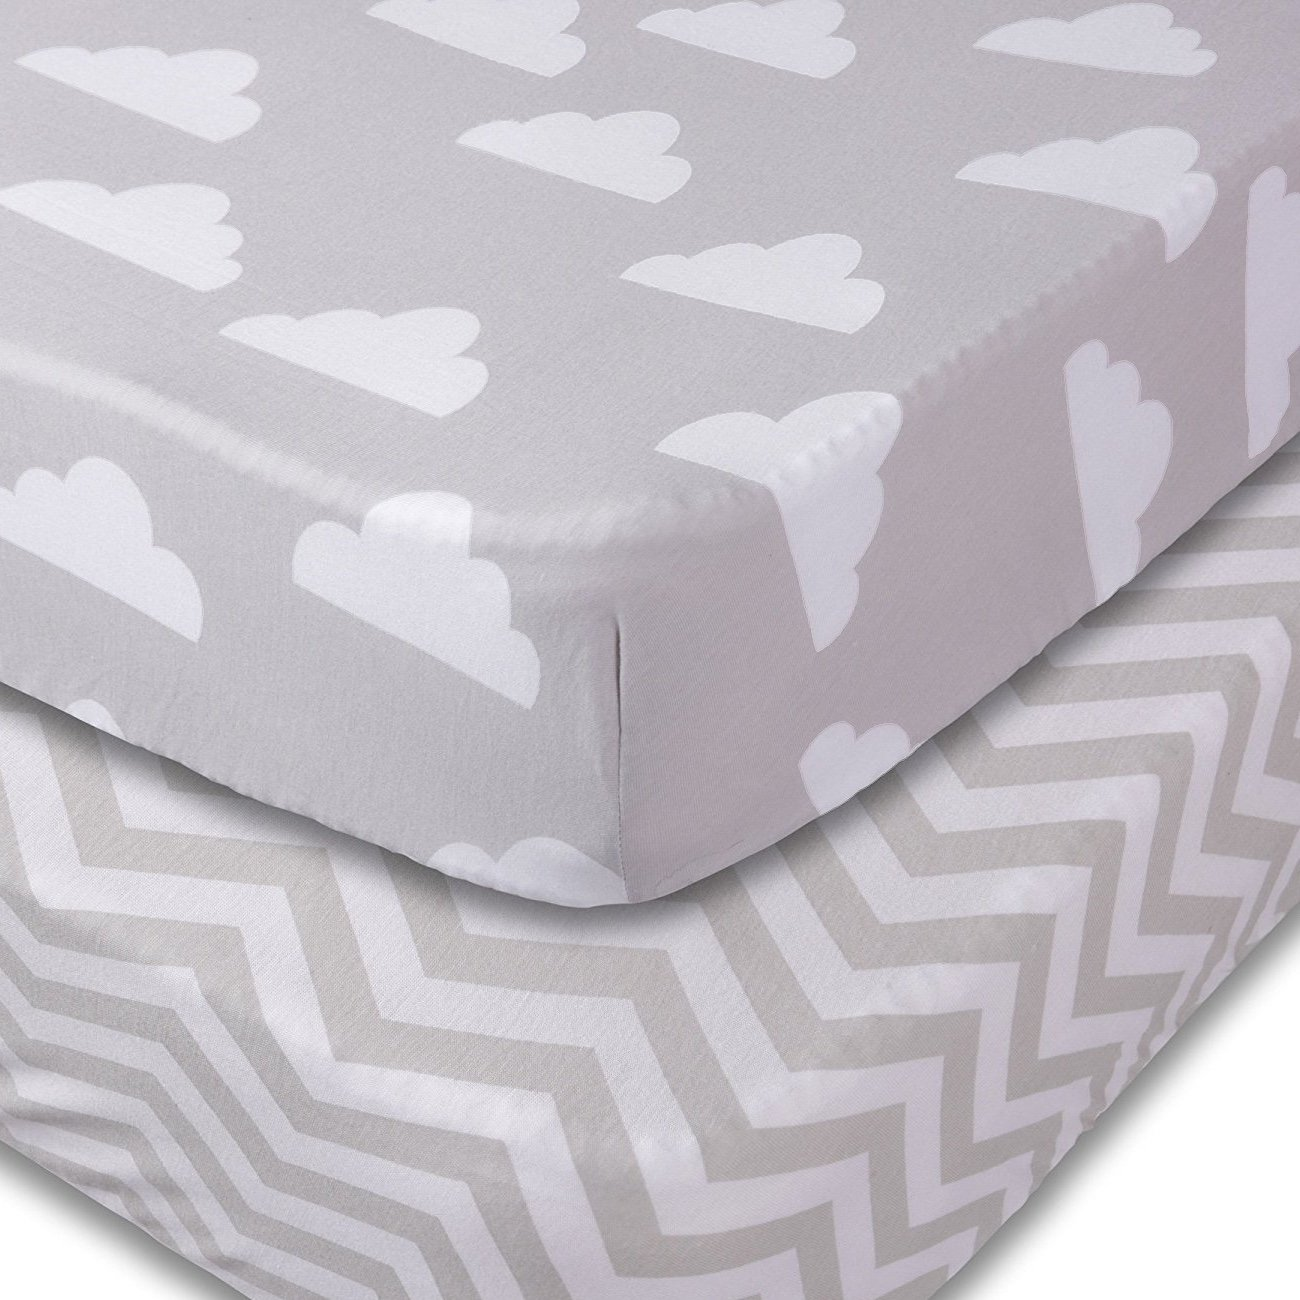 Crib Sheets, 2 Pack Unisex Clouds and Chevron Fitted Soft Jersey Cotton Bedding by Jomolly